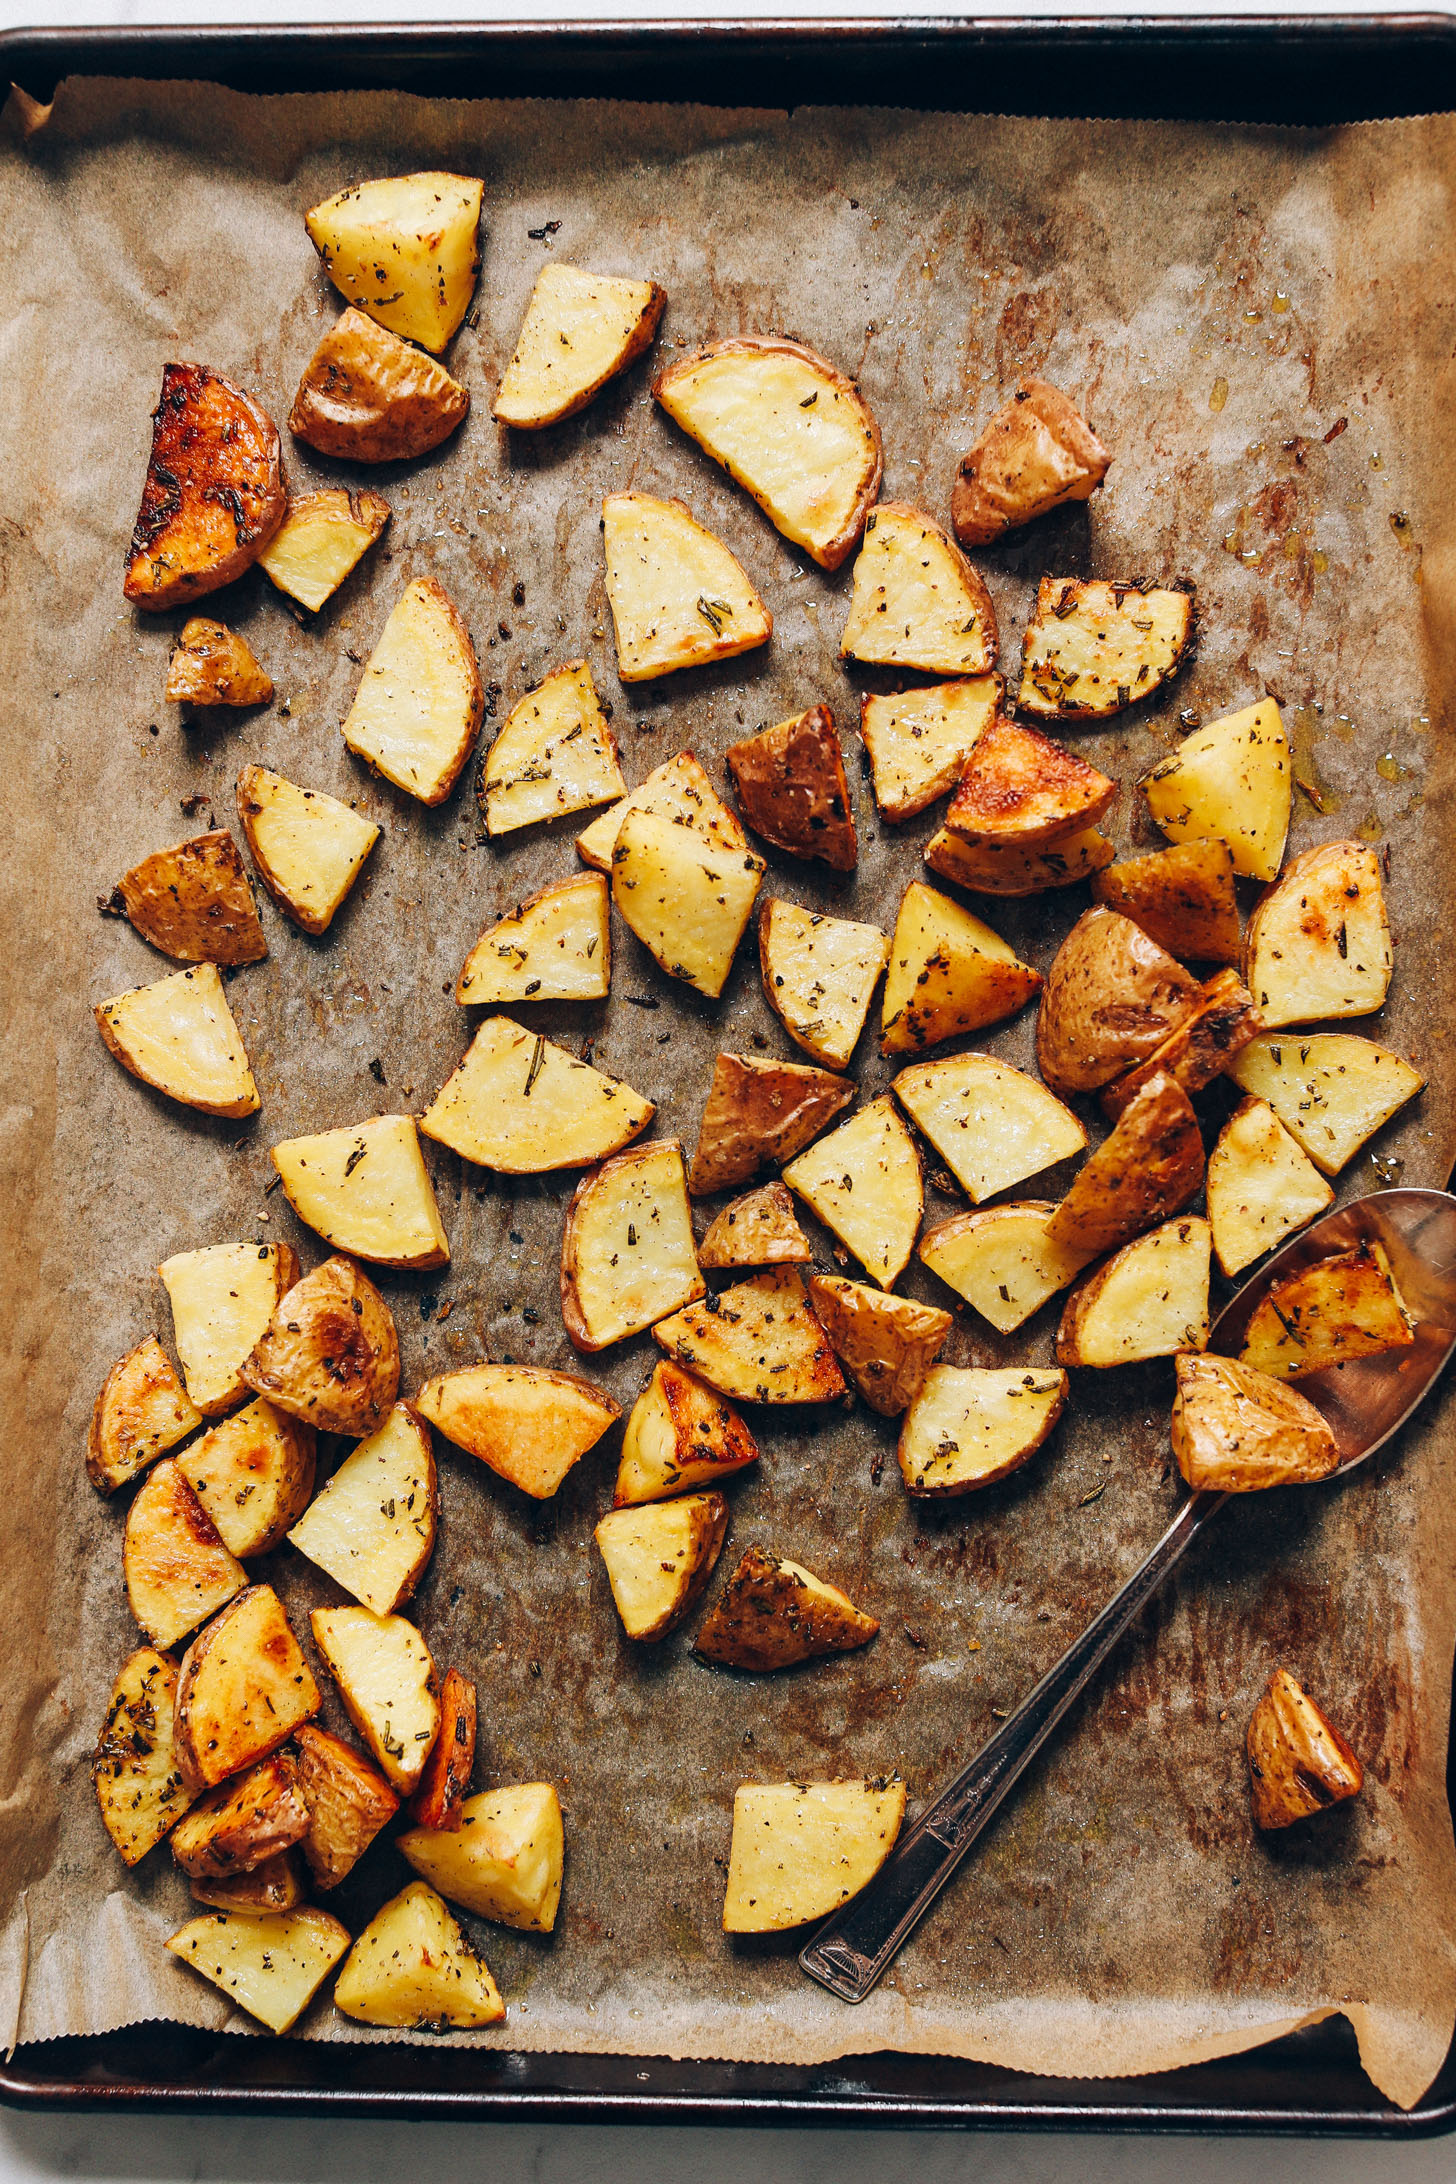 Baking sheet of Perfect Roasted Potatoes